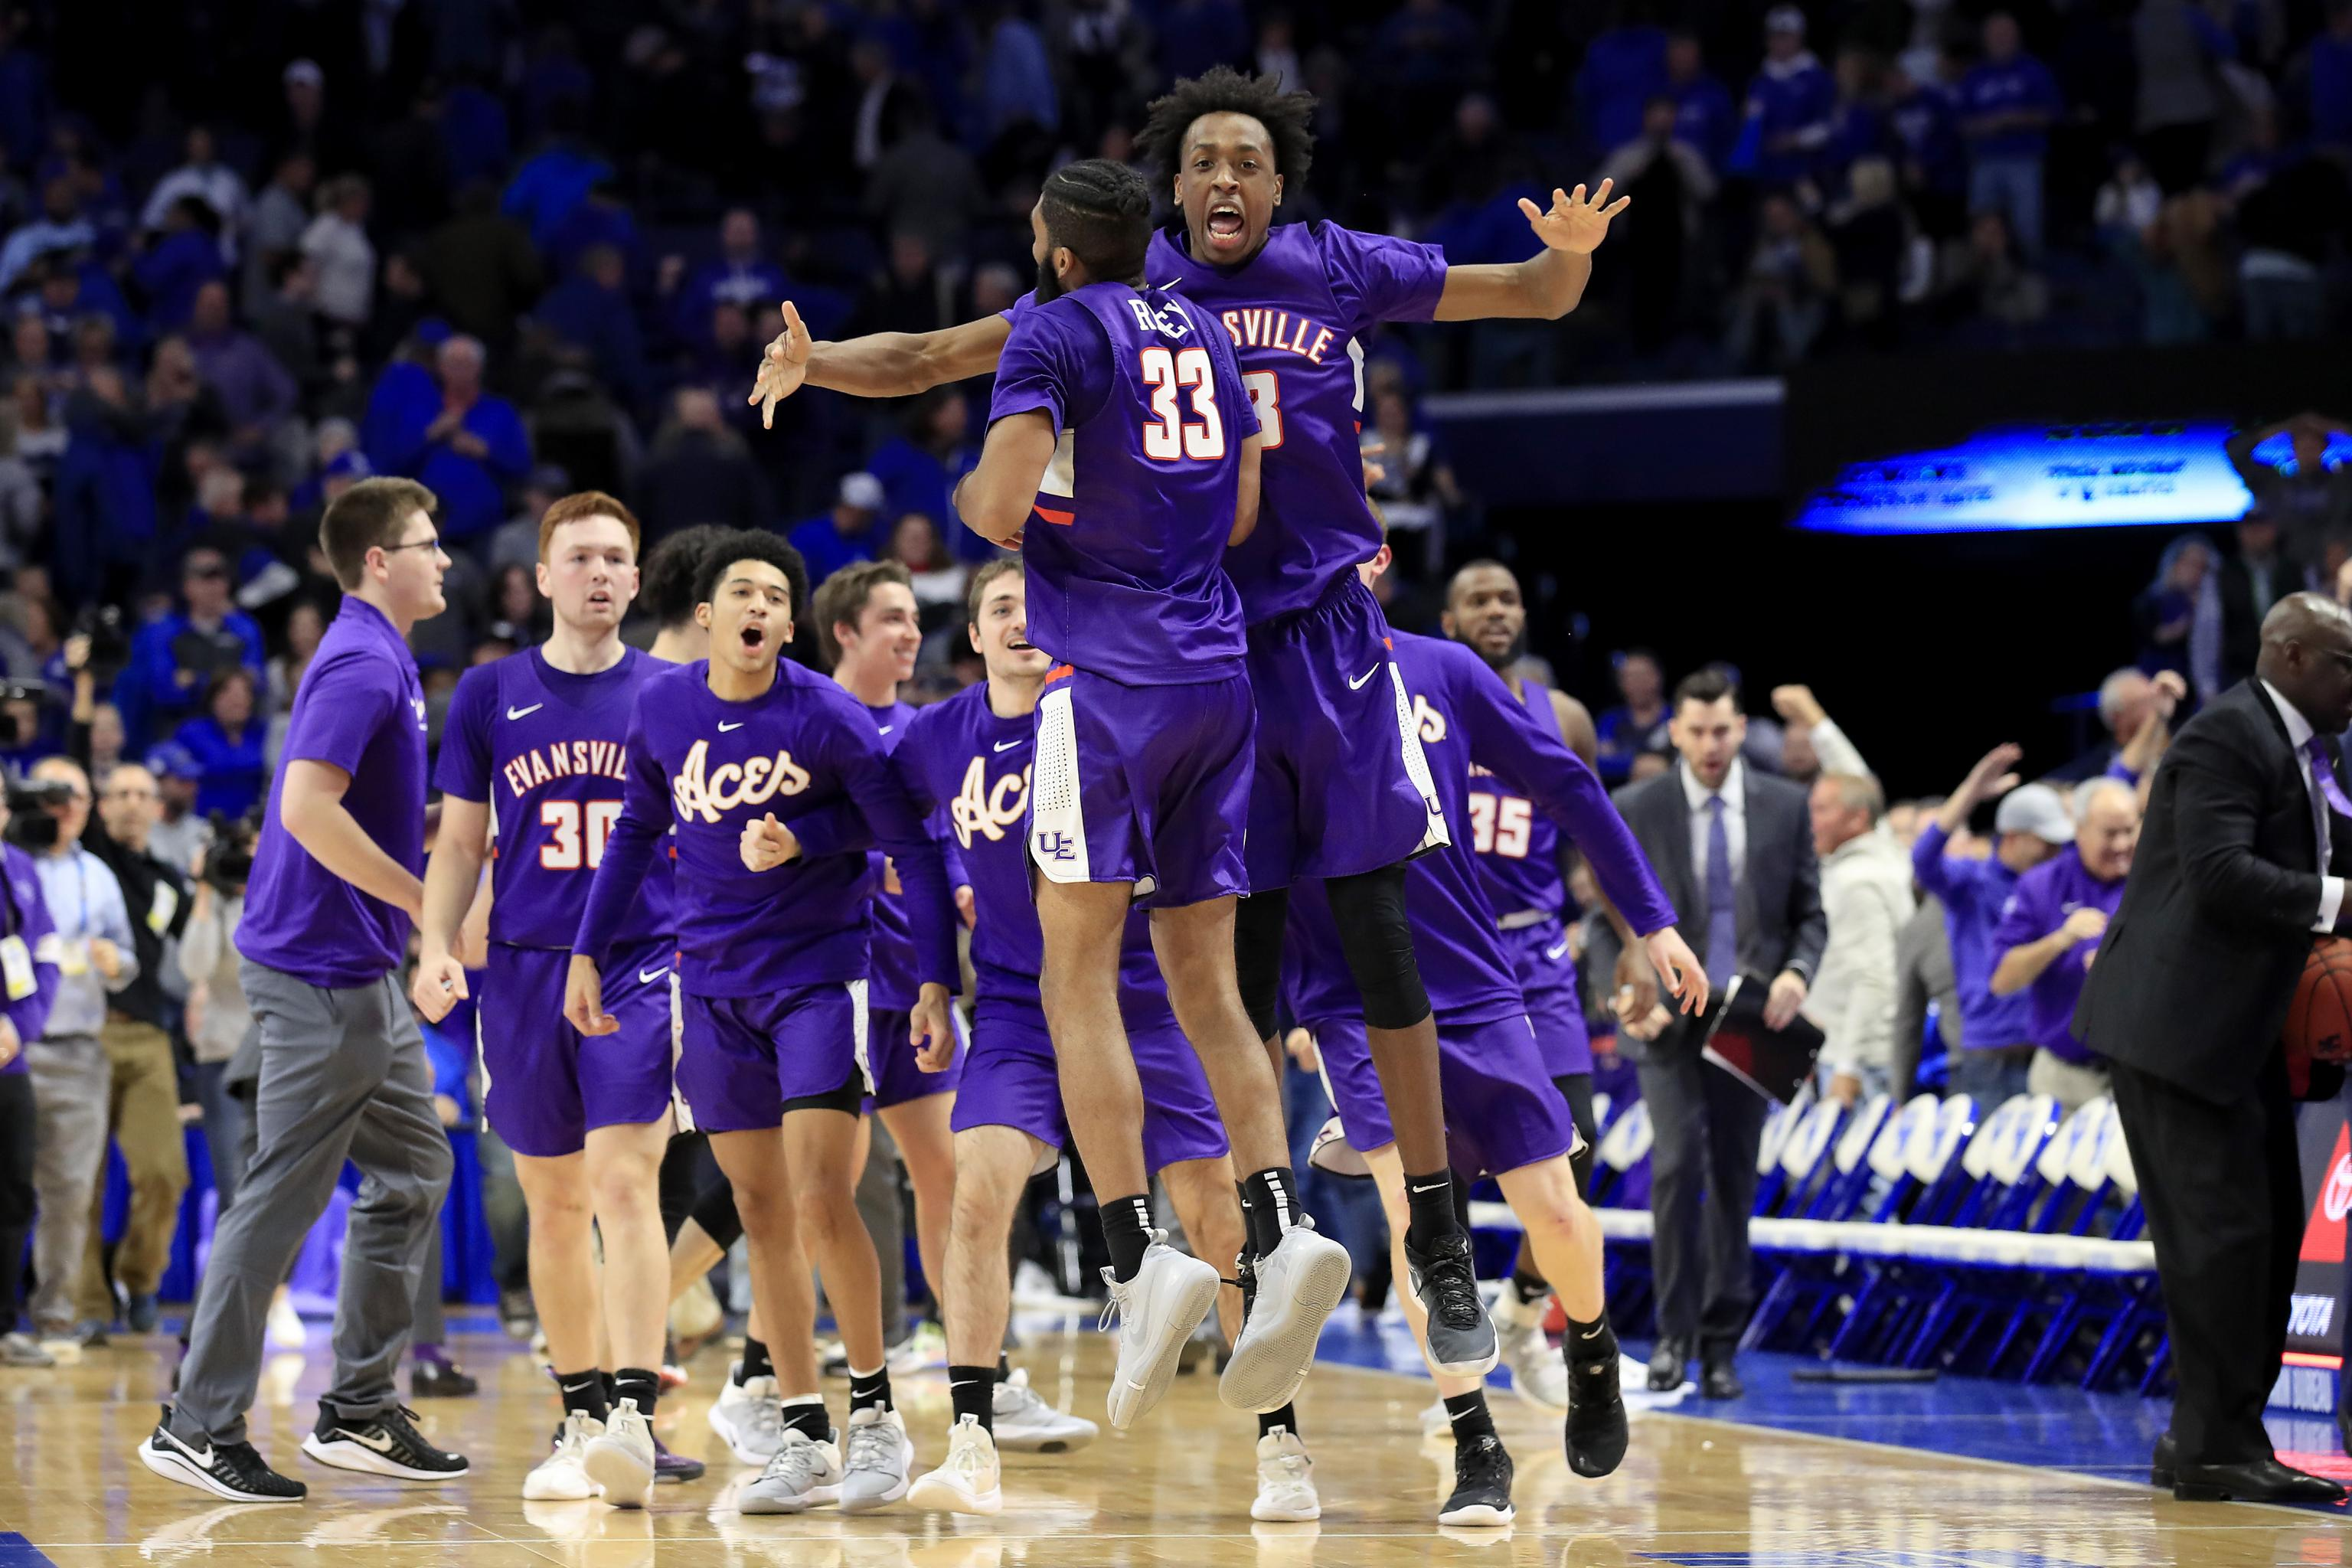 Evansville Purple Aces Celebration vs Kentucky Rupp Arena Week 2 2019